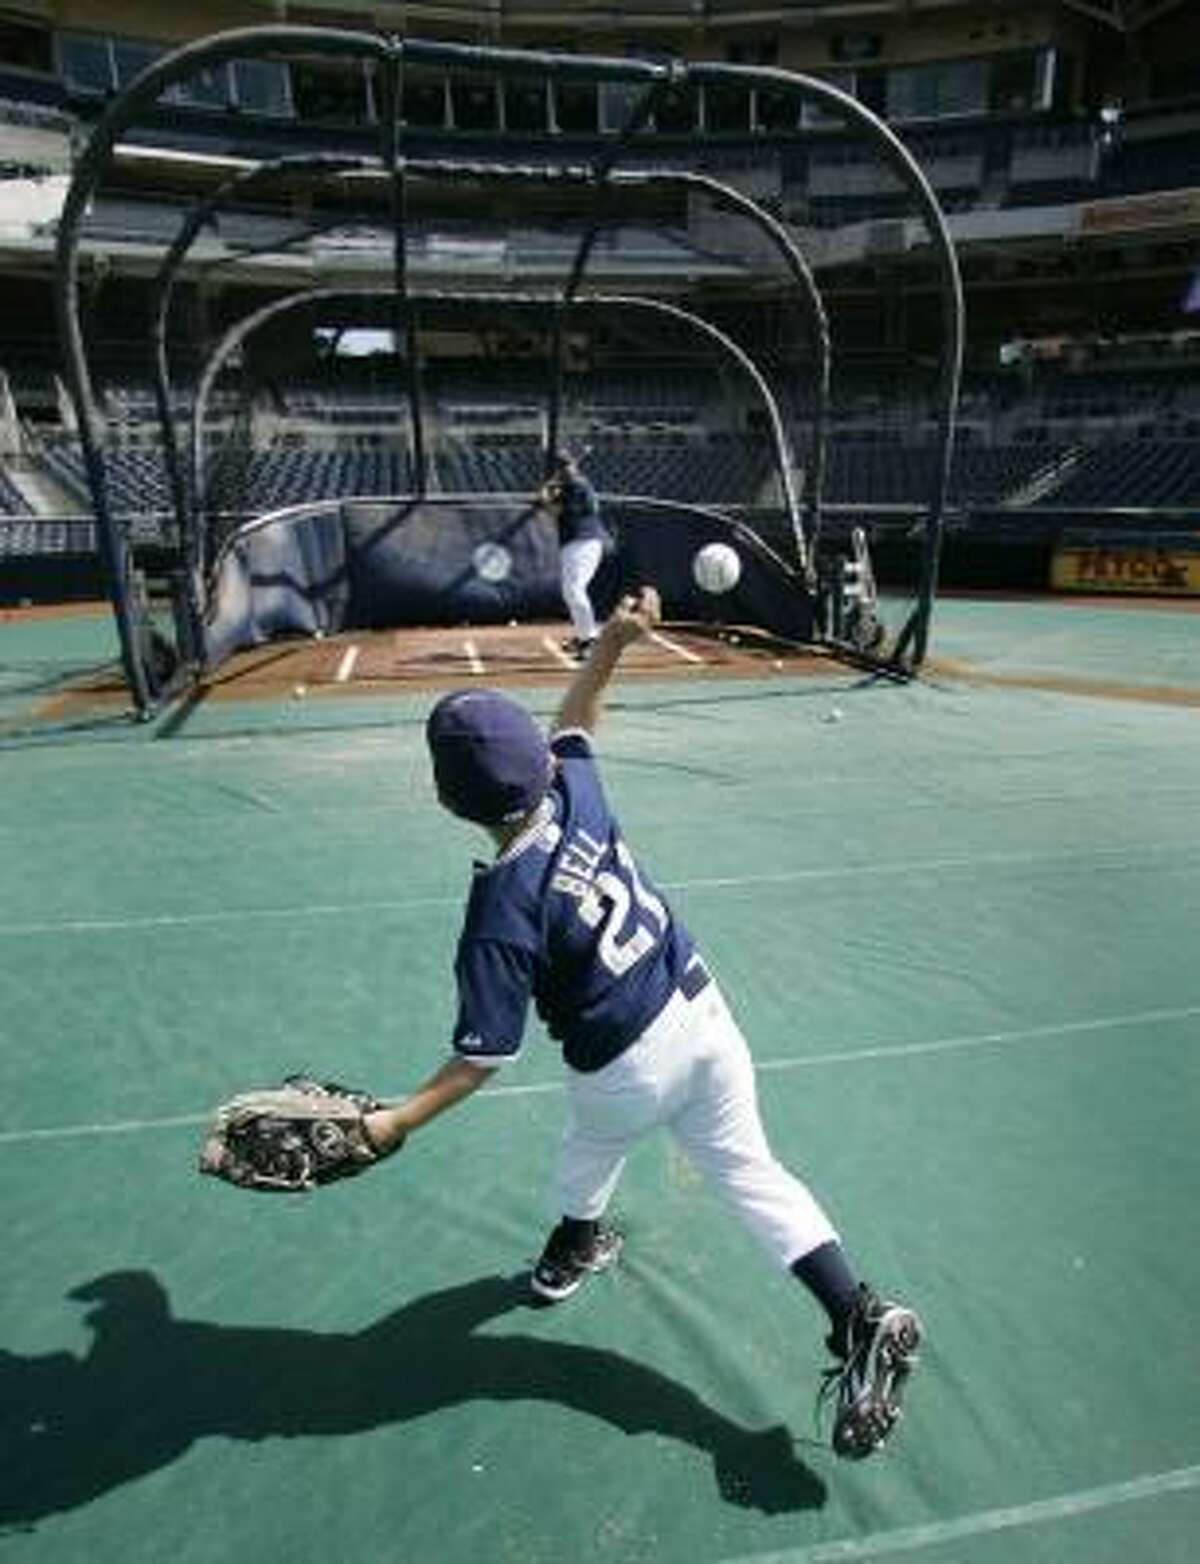 Reece Bell, the 5-year-old son of San Diego closer Heath Bell, throws batting practice to his father at Petco Park prior to the game against the Astros on Wednesday in San Diego.